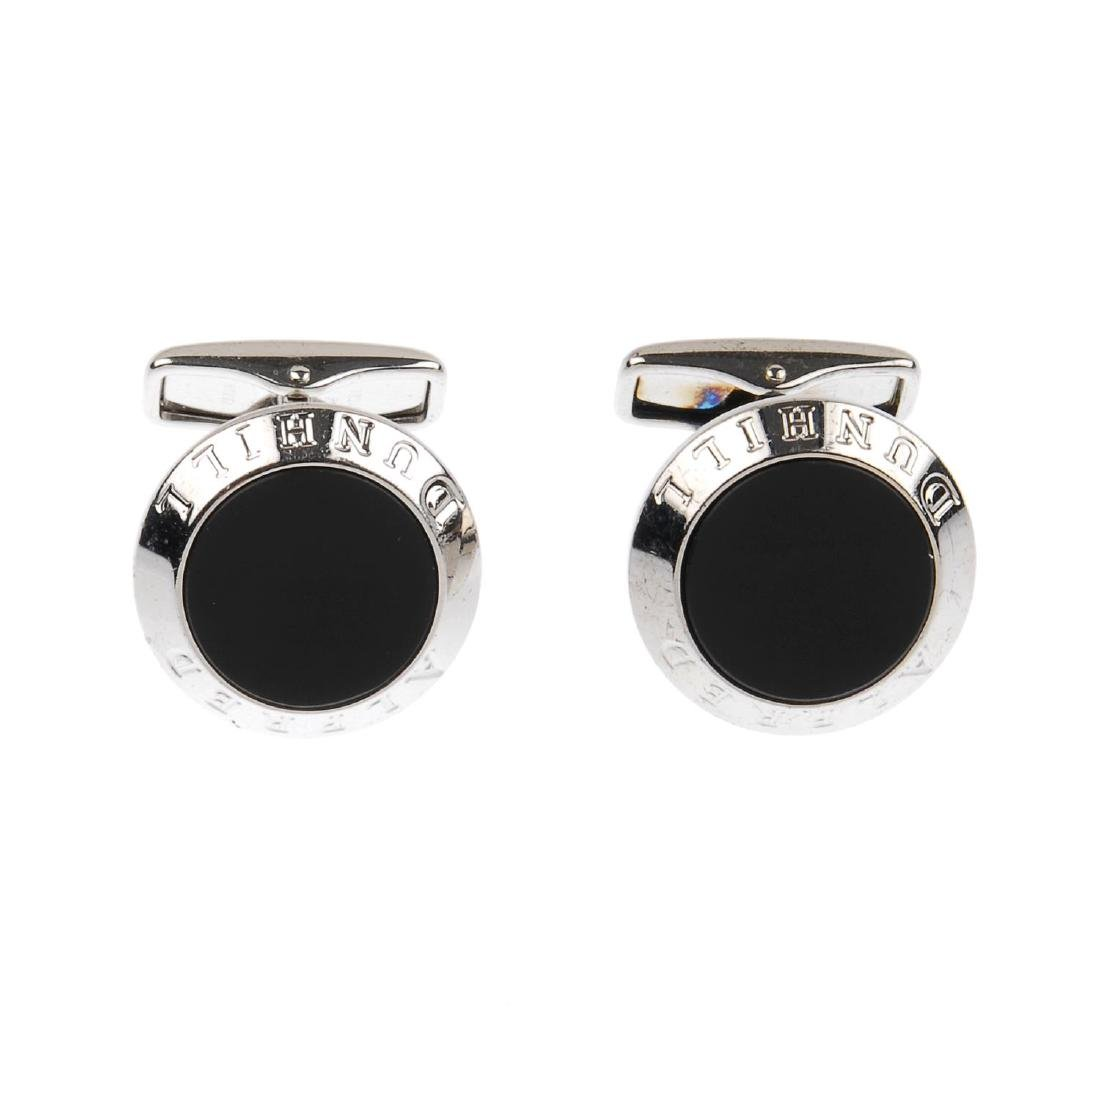 ALFRED DUNHILL - two pairs of cufflinks. The first flat